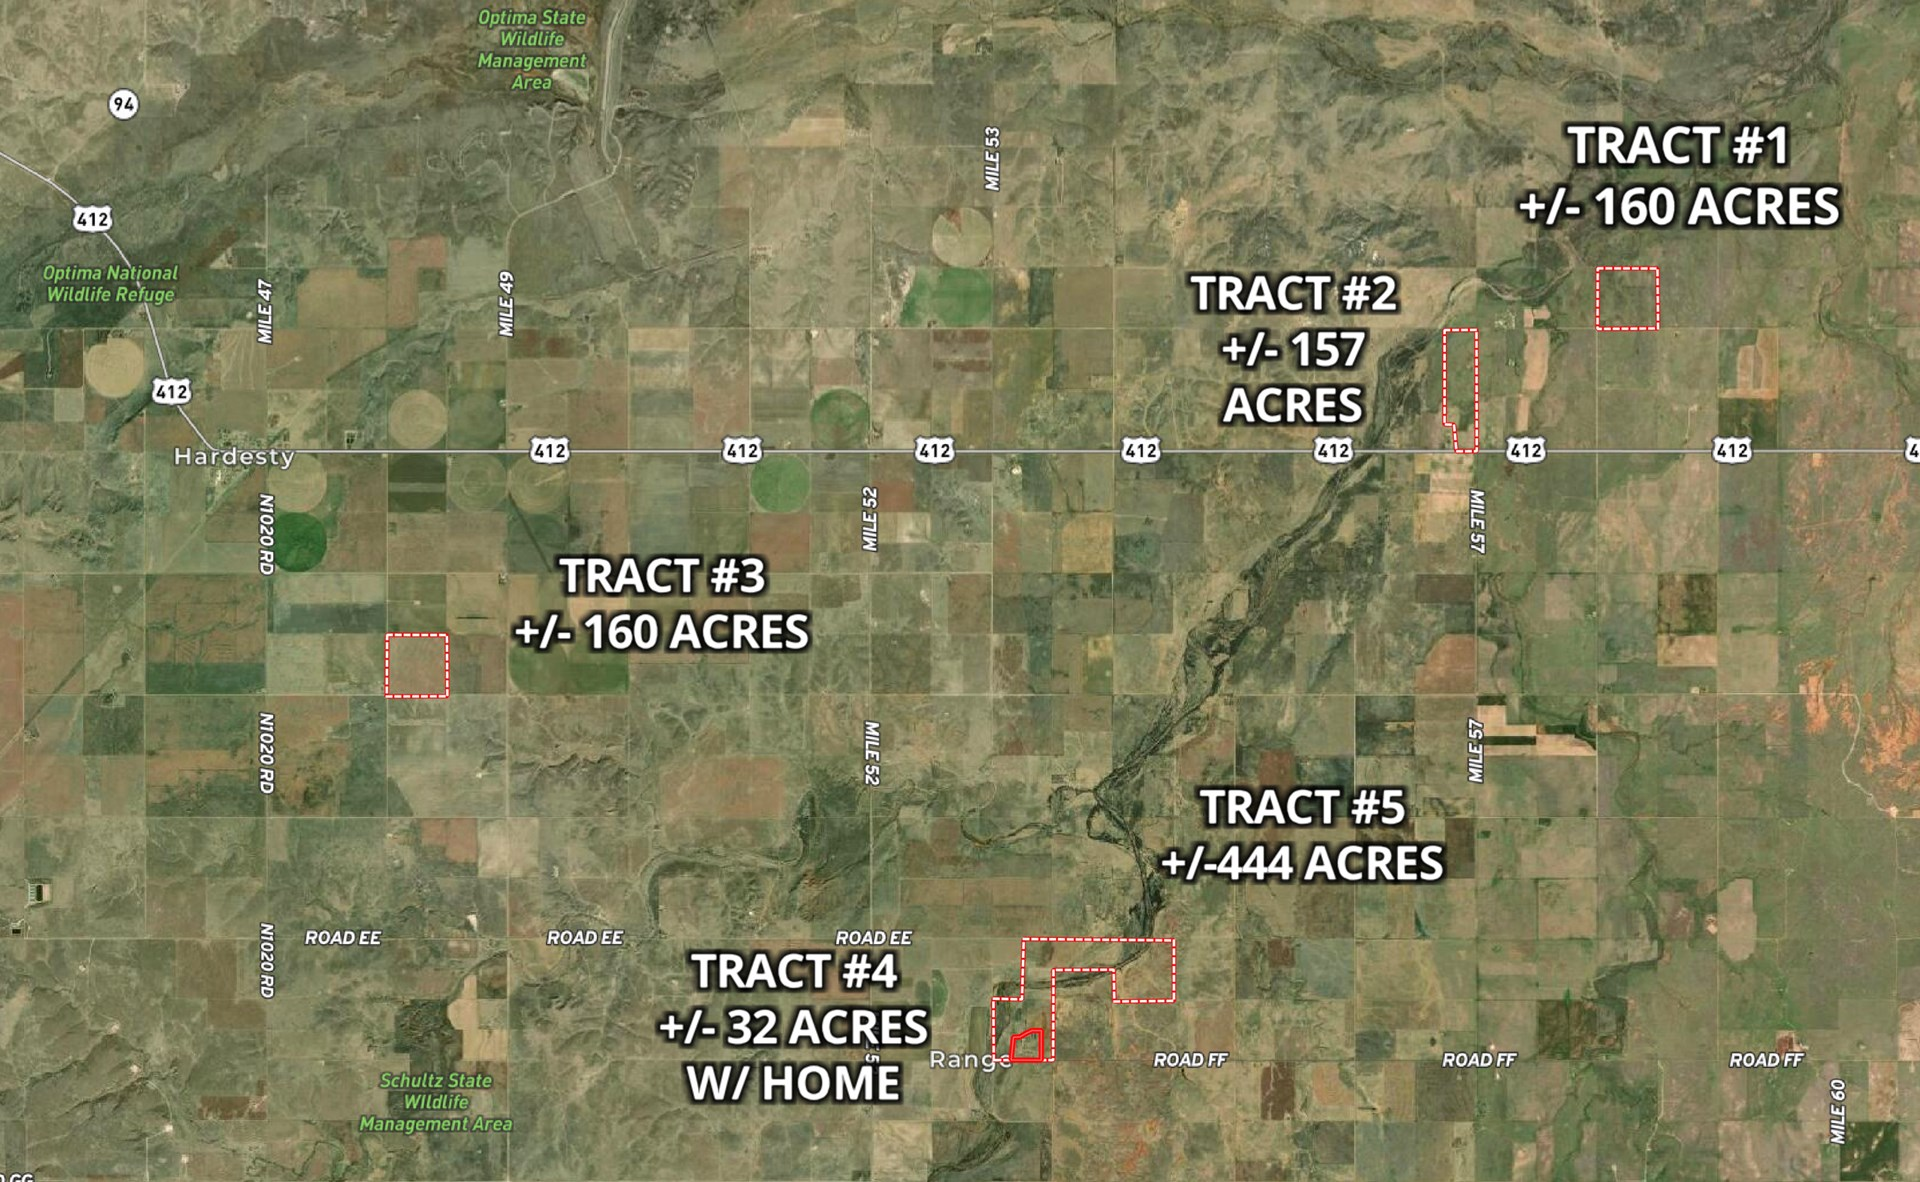 Texas County Farm, Ranch & Hunting Land for Sale 444 Acres